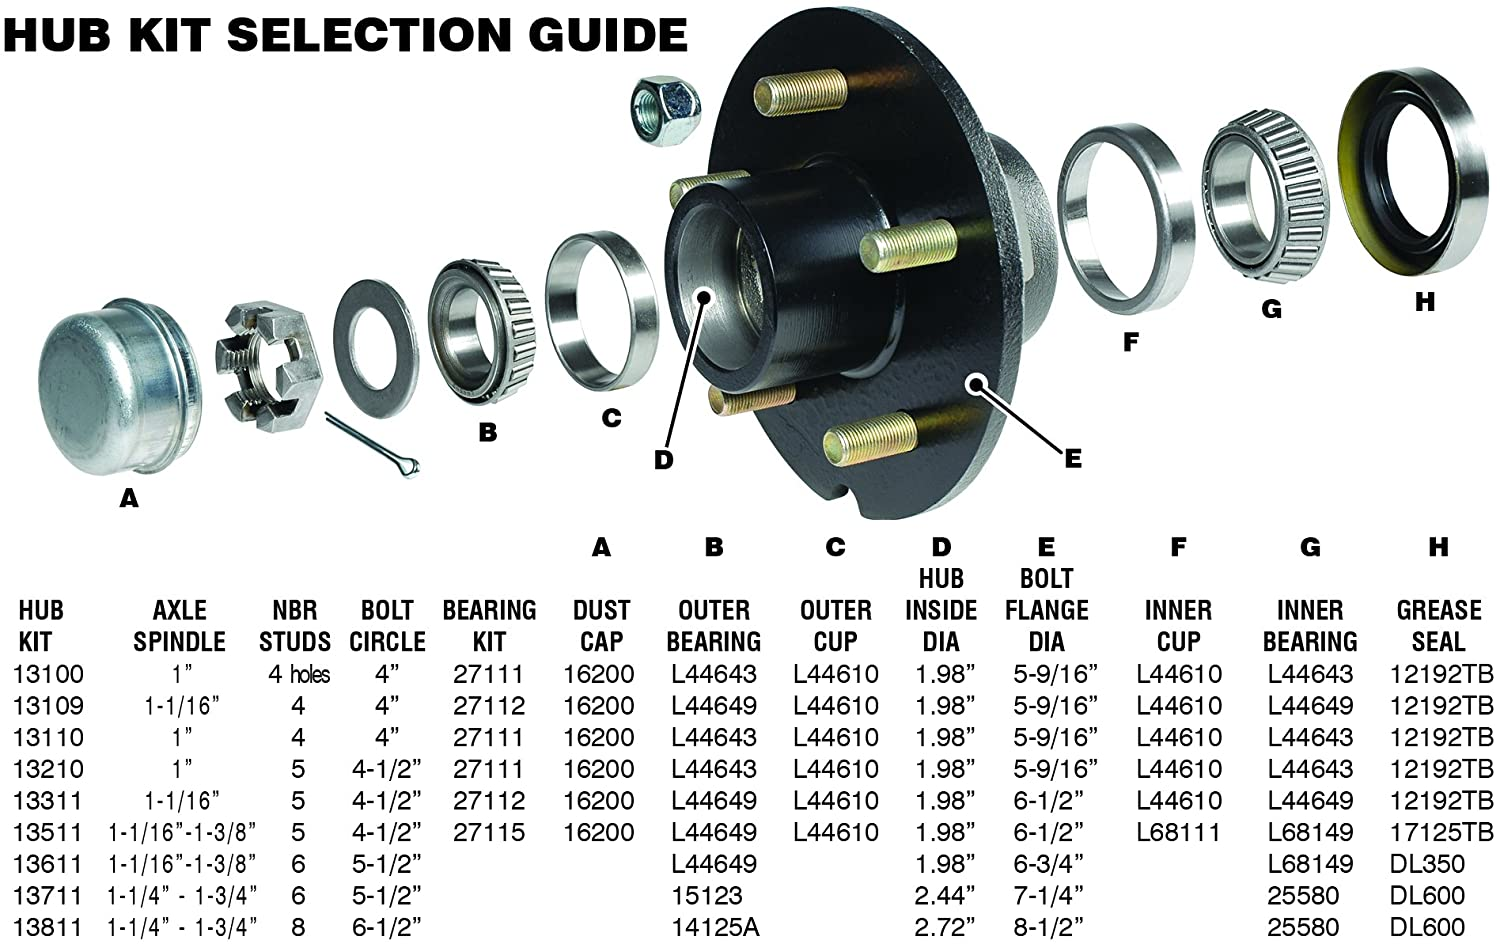 Tapered 1 3//4 to 1 1//4 Stud - Replacement Parts and Accessories for Your Ski Boat 12 Brake Size 6 x 5 1//2 Fishing Boat or Sailboat Trailer CE Smith Company CE Smith Trailer 13711 Trailer Hub Kit